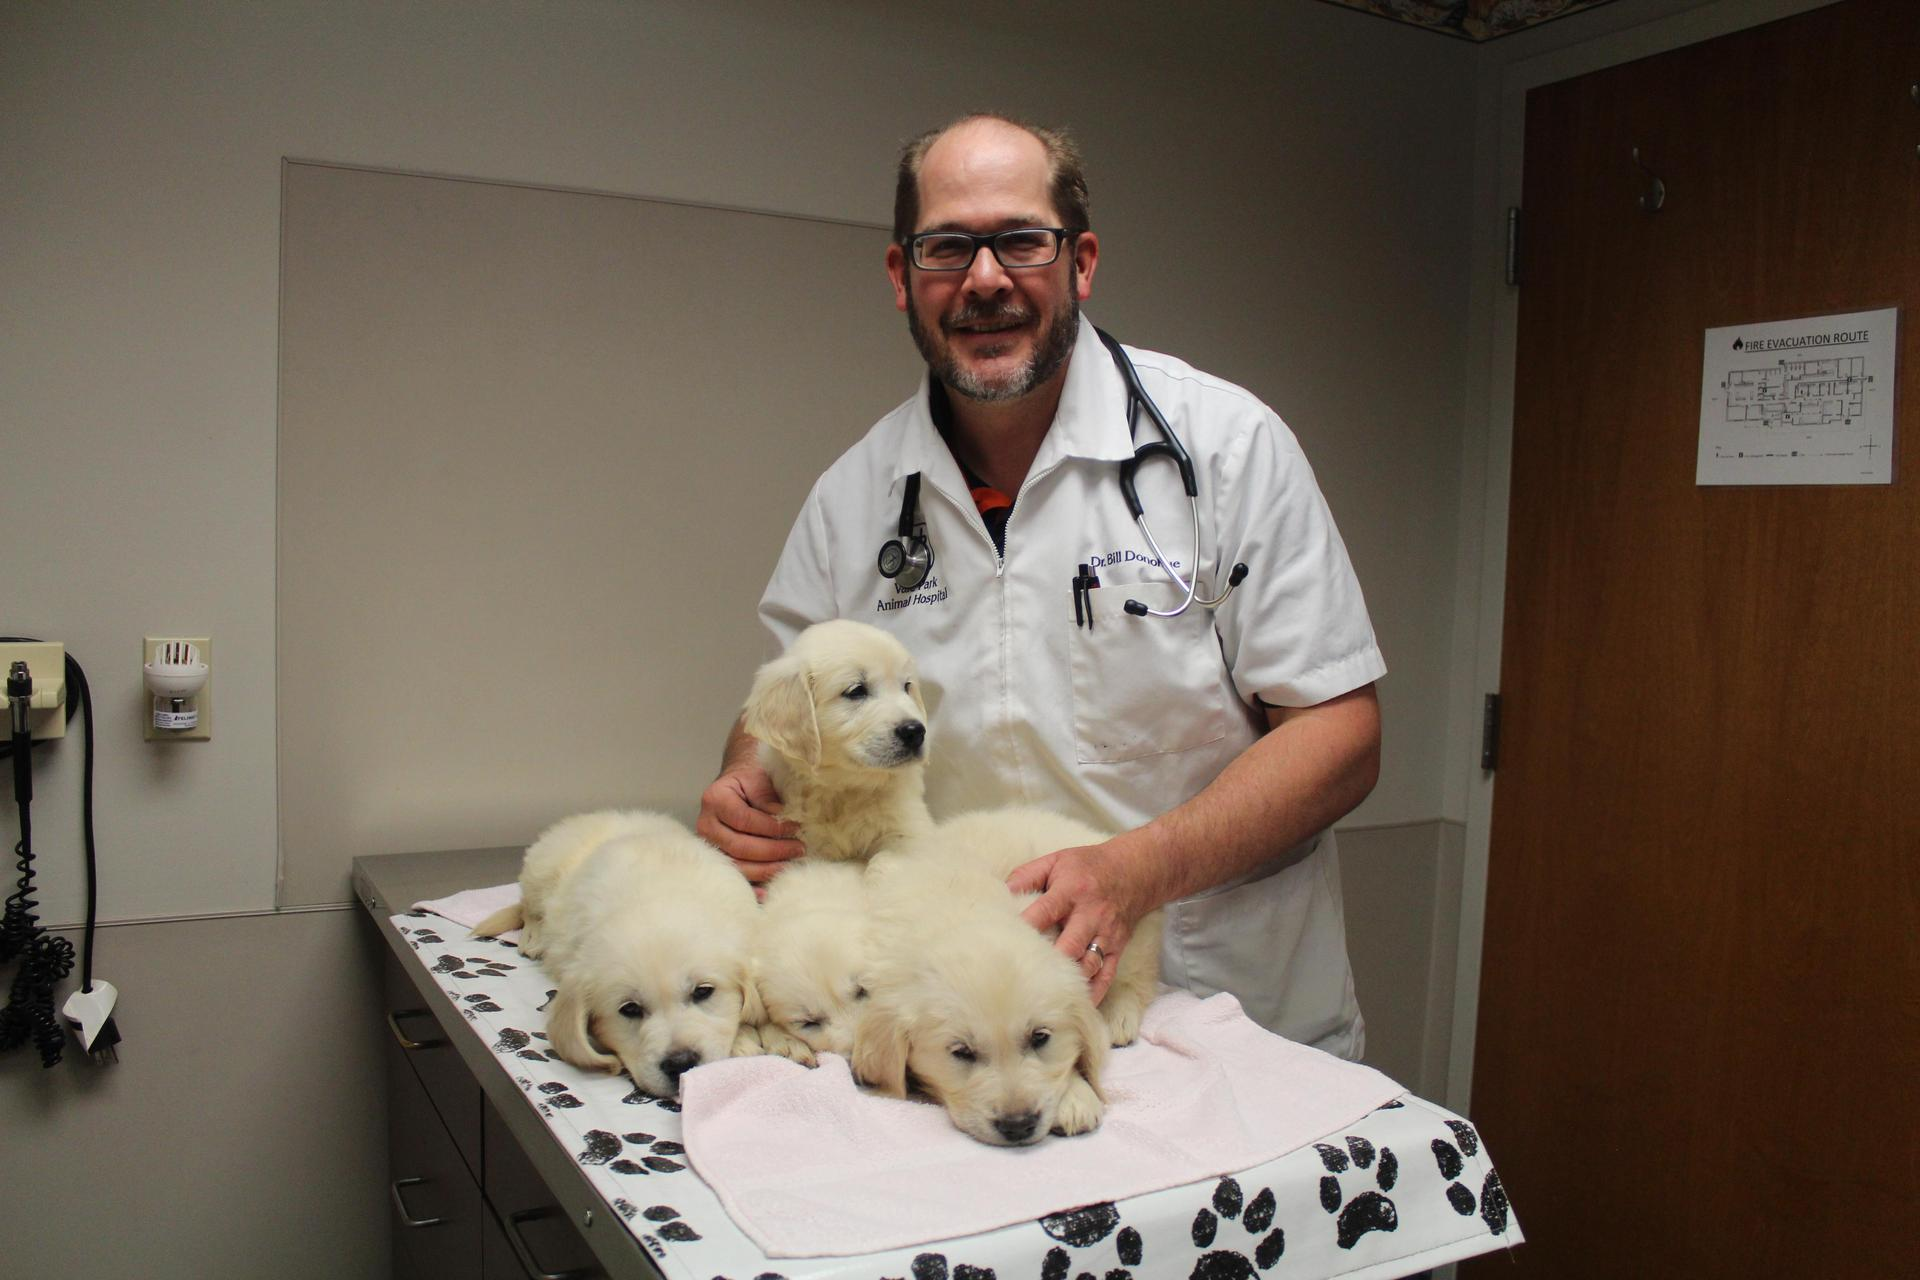 Some of the Viking Pups at their check up with Dr. Bill Donohue of Vale Park Animal Hospital.